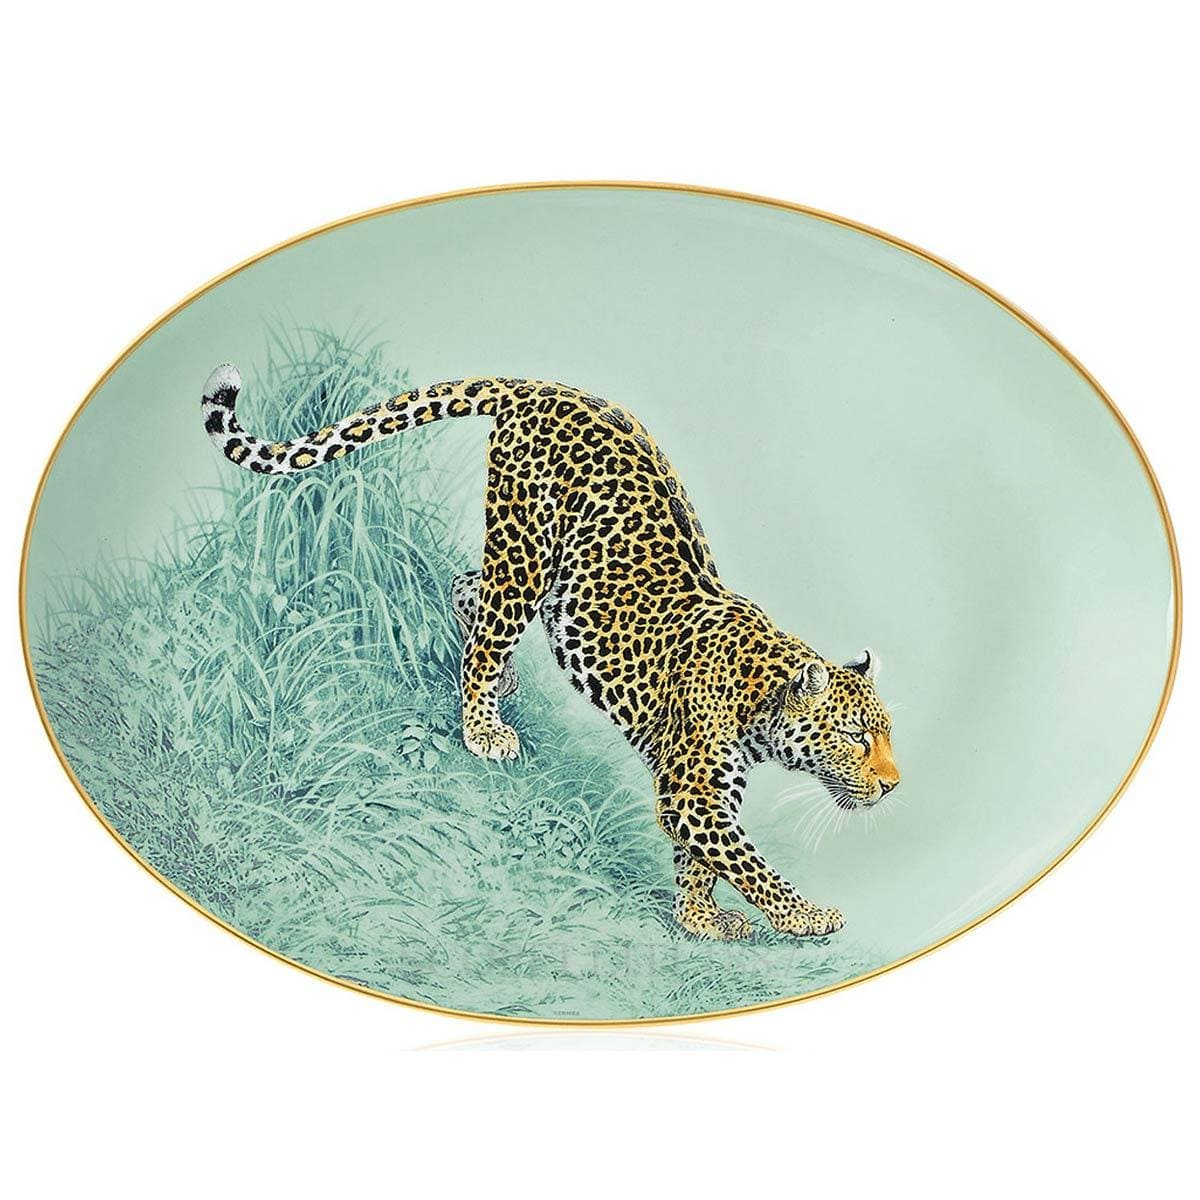 Hermes Carnets d'Equateur Oval Platter small model